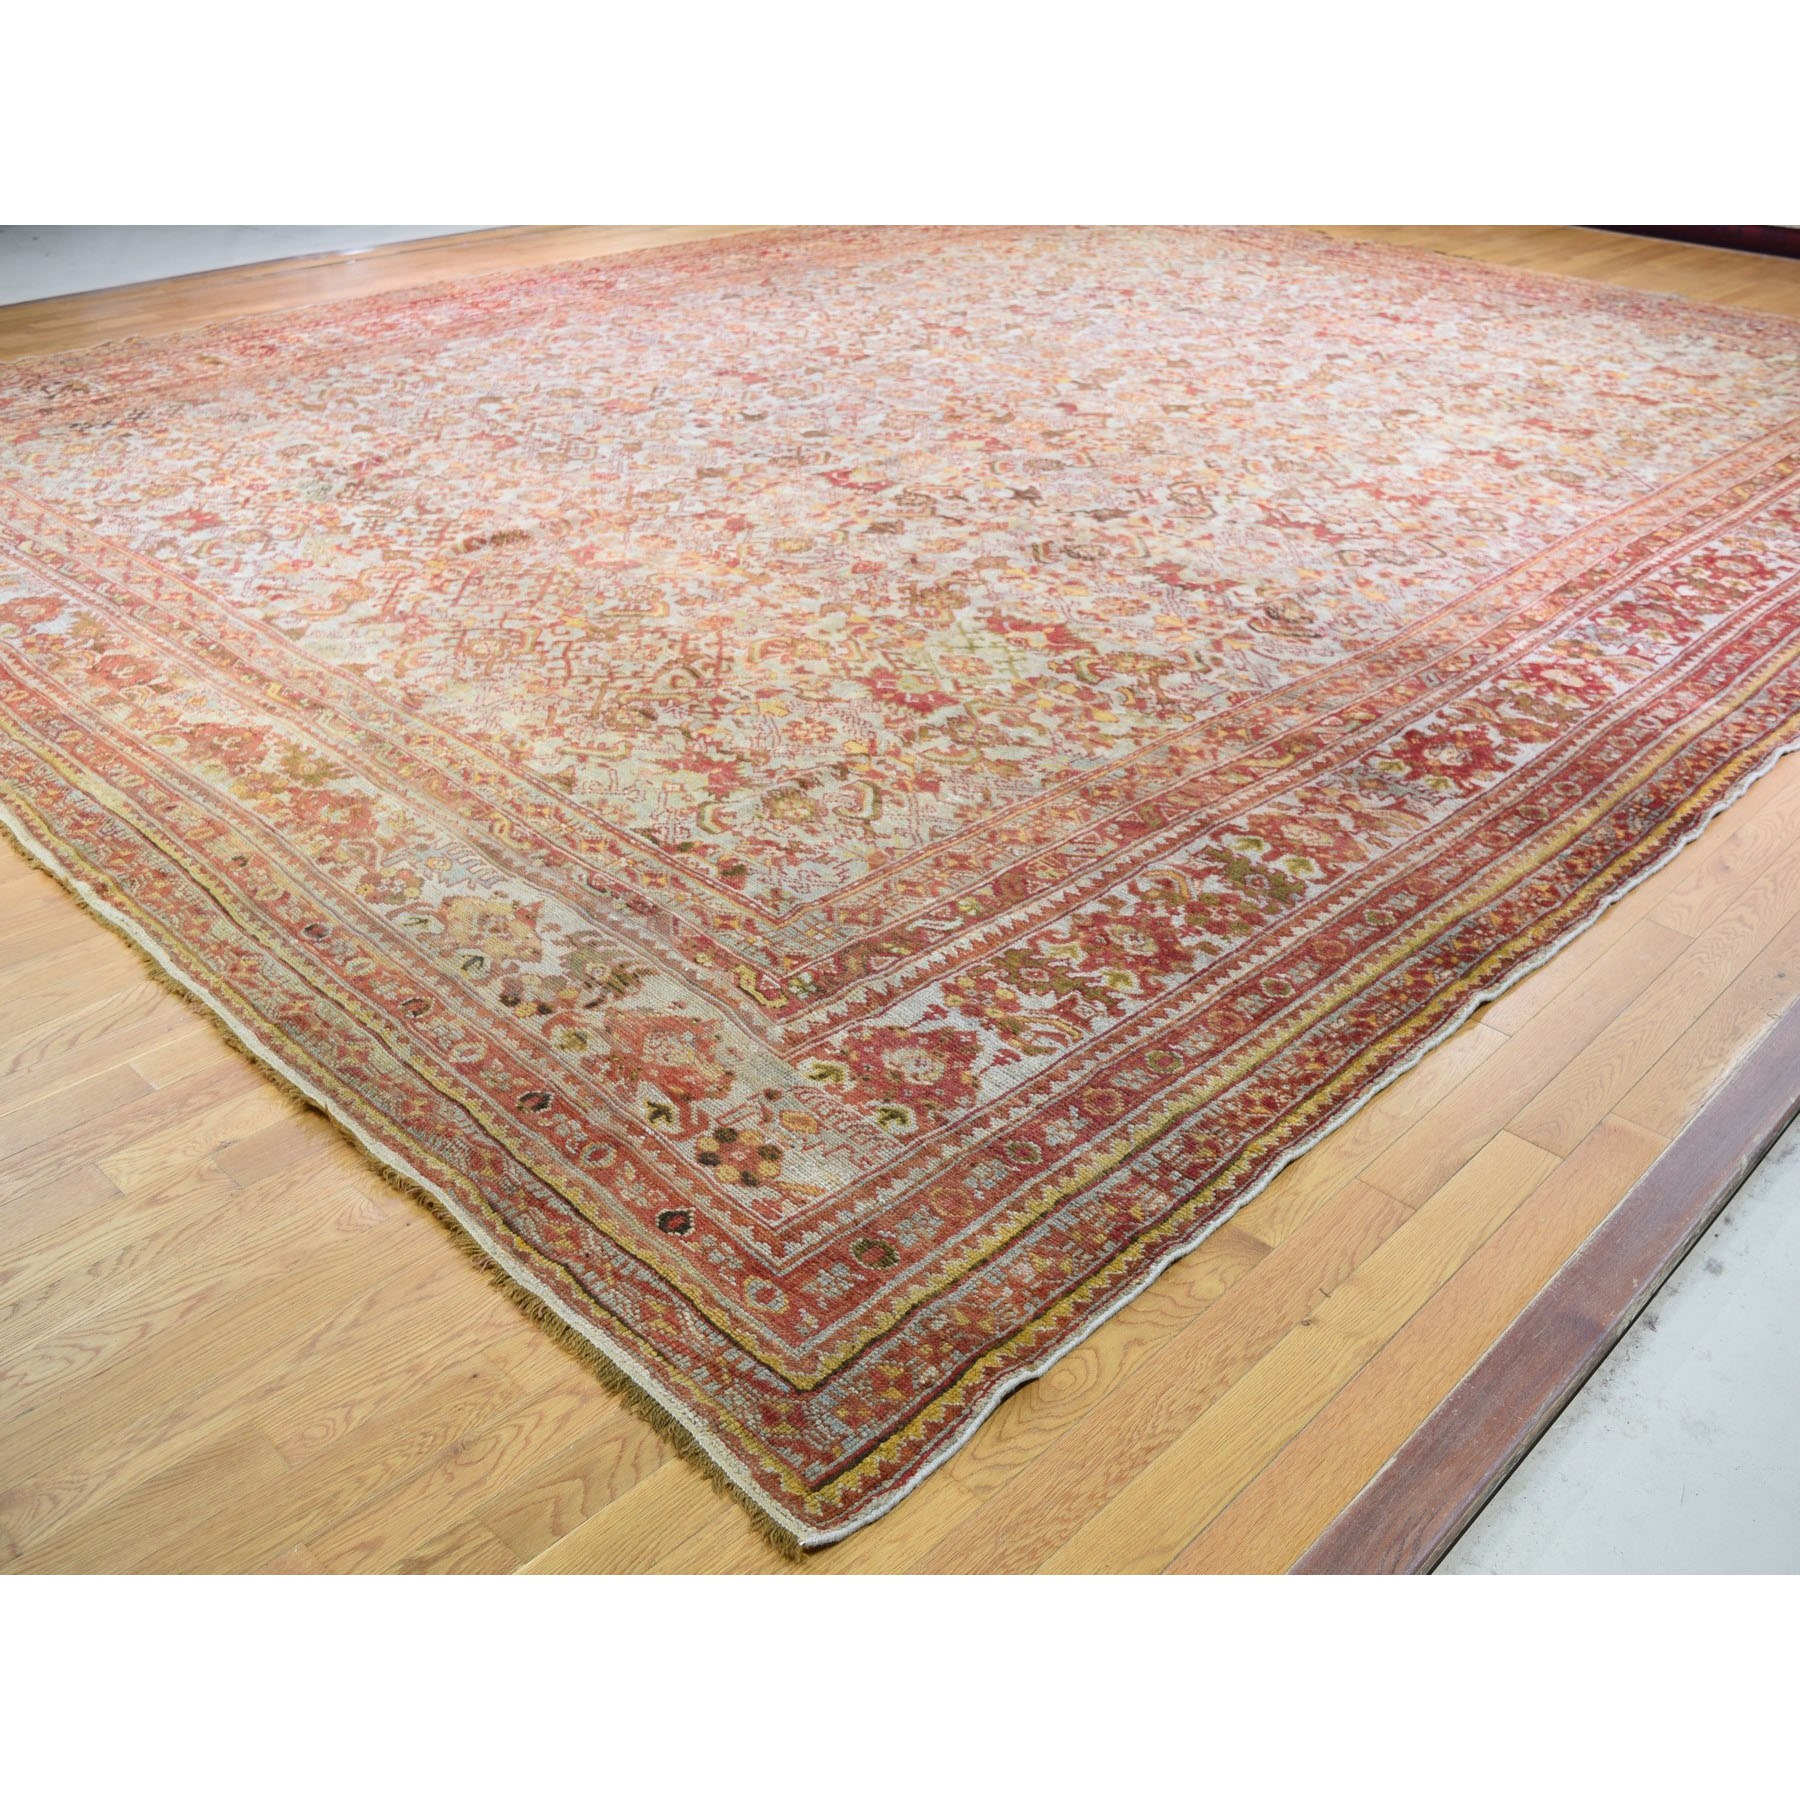 16-8 x21- Mansion Size Antique Turkish Oushak All Over Design Pure Wool Hand Knotted Oriental Rug